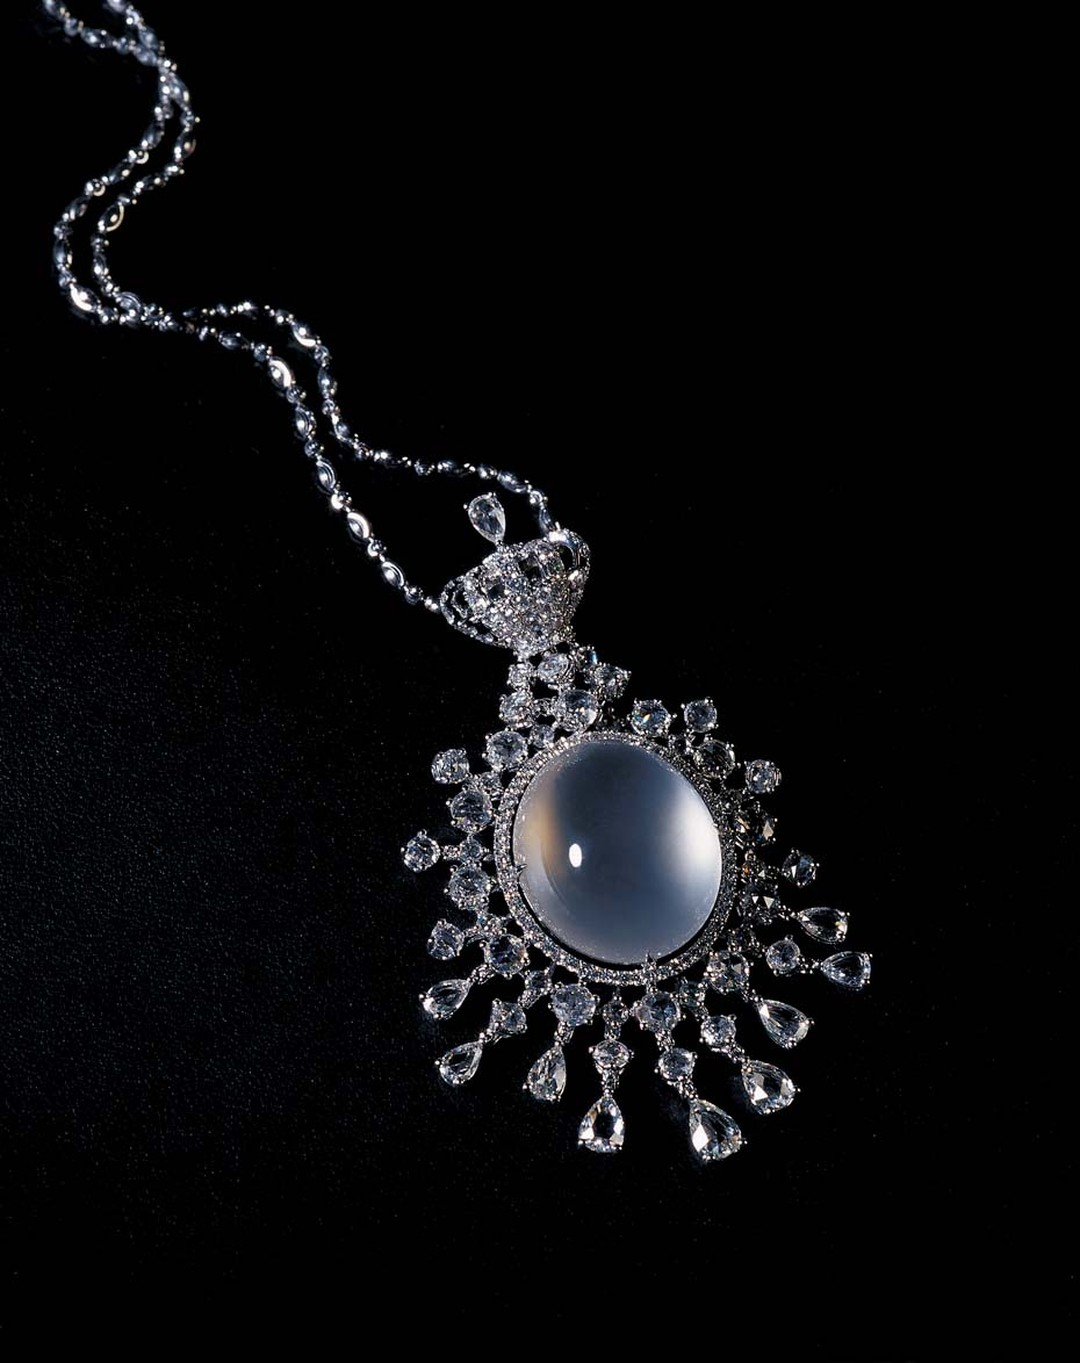 Colourless icy jadeite pendant necklace with diamonds.